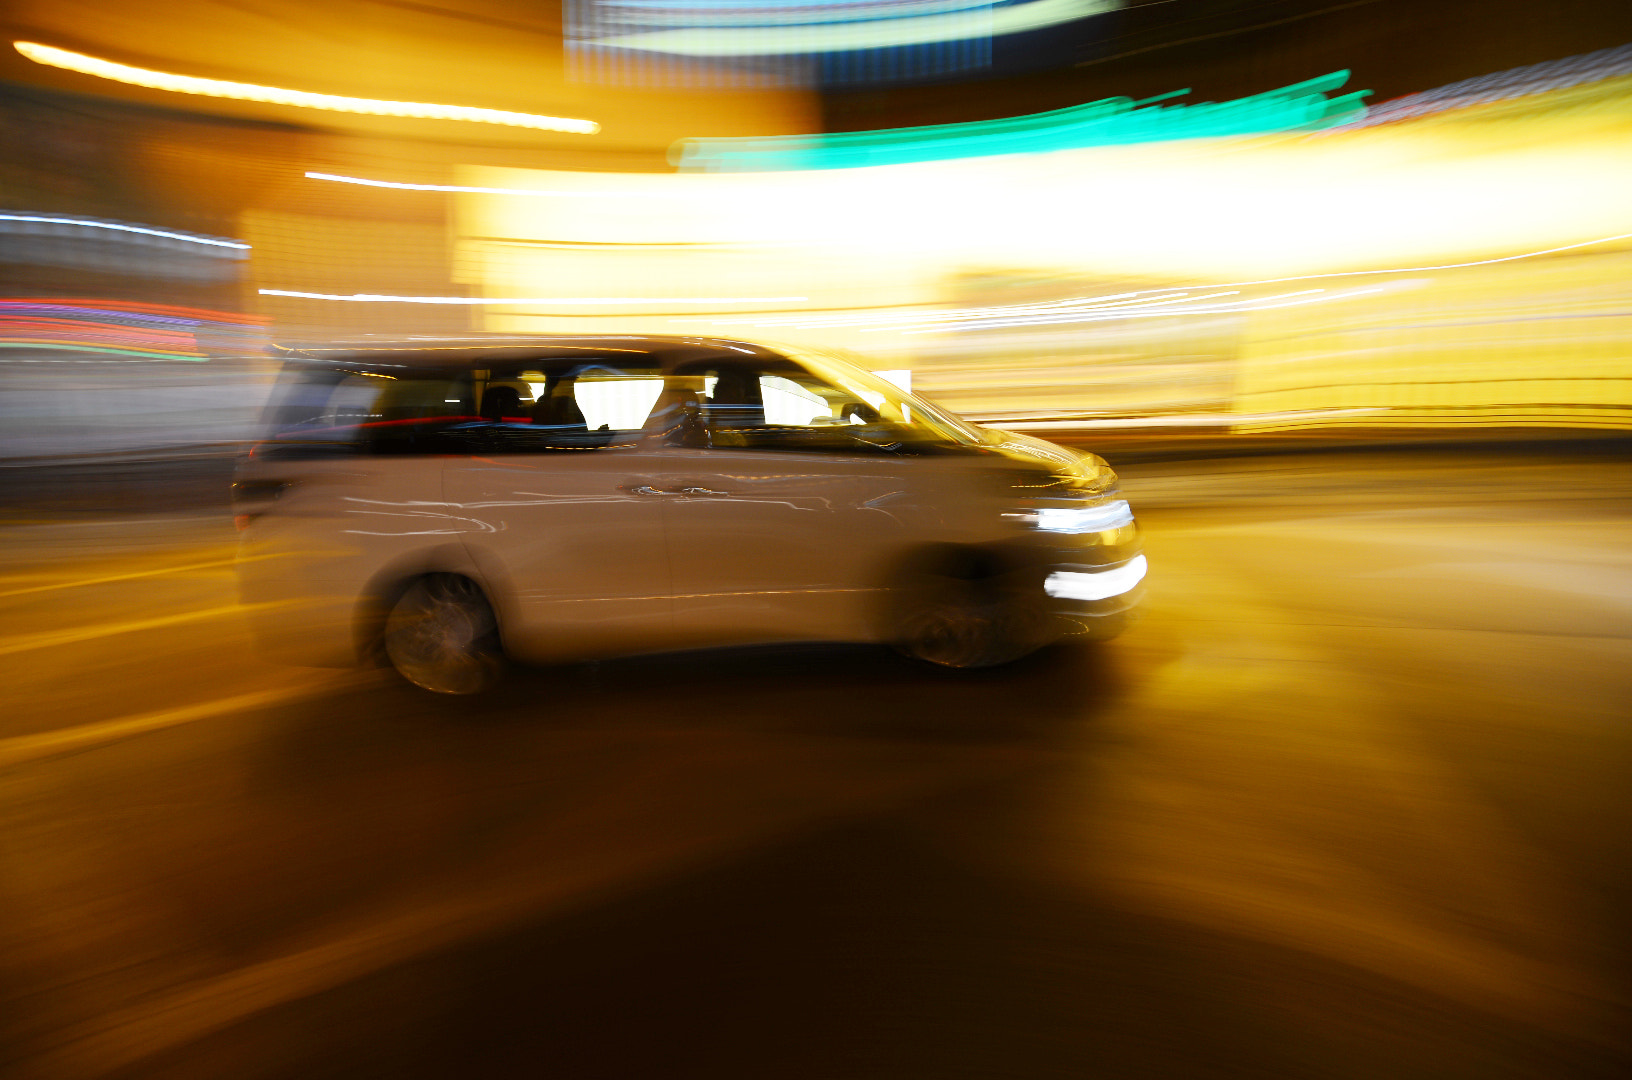 Photograph Speed by Wil Leung on 500px